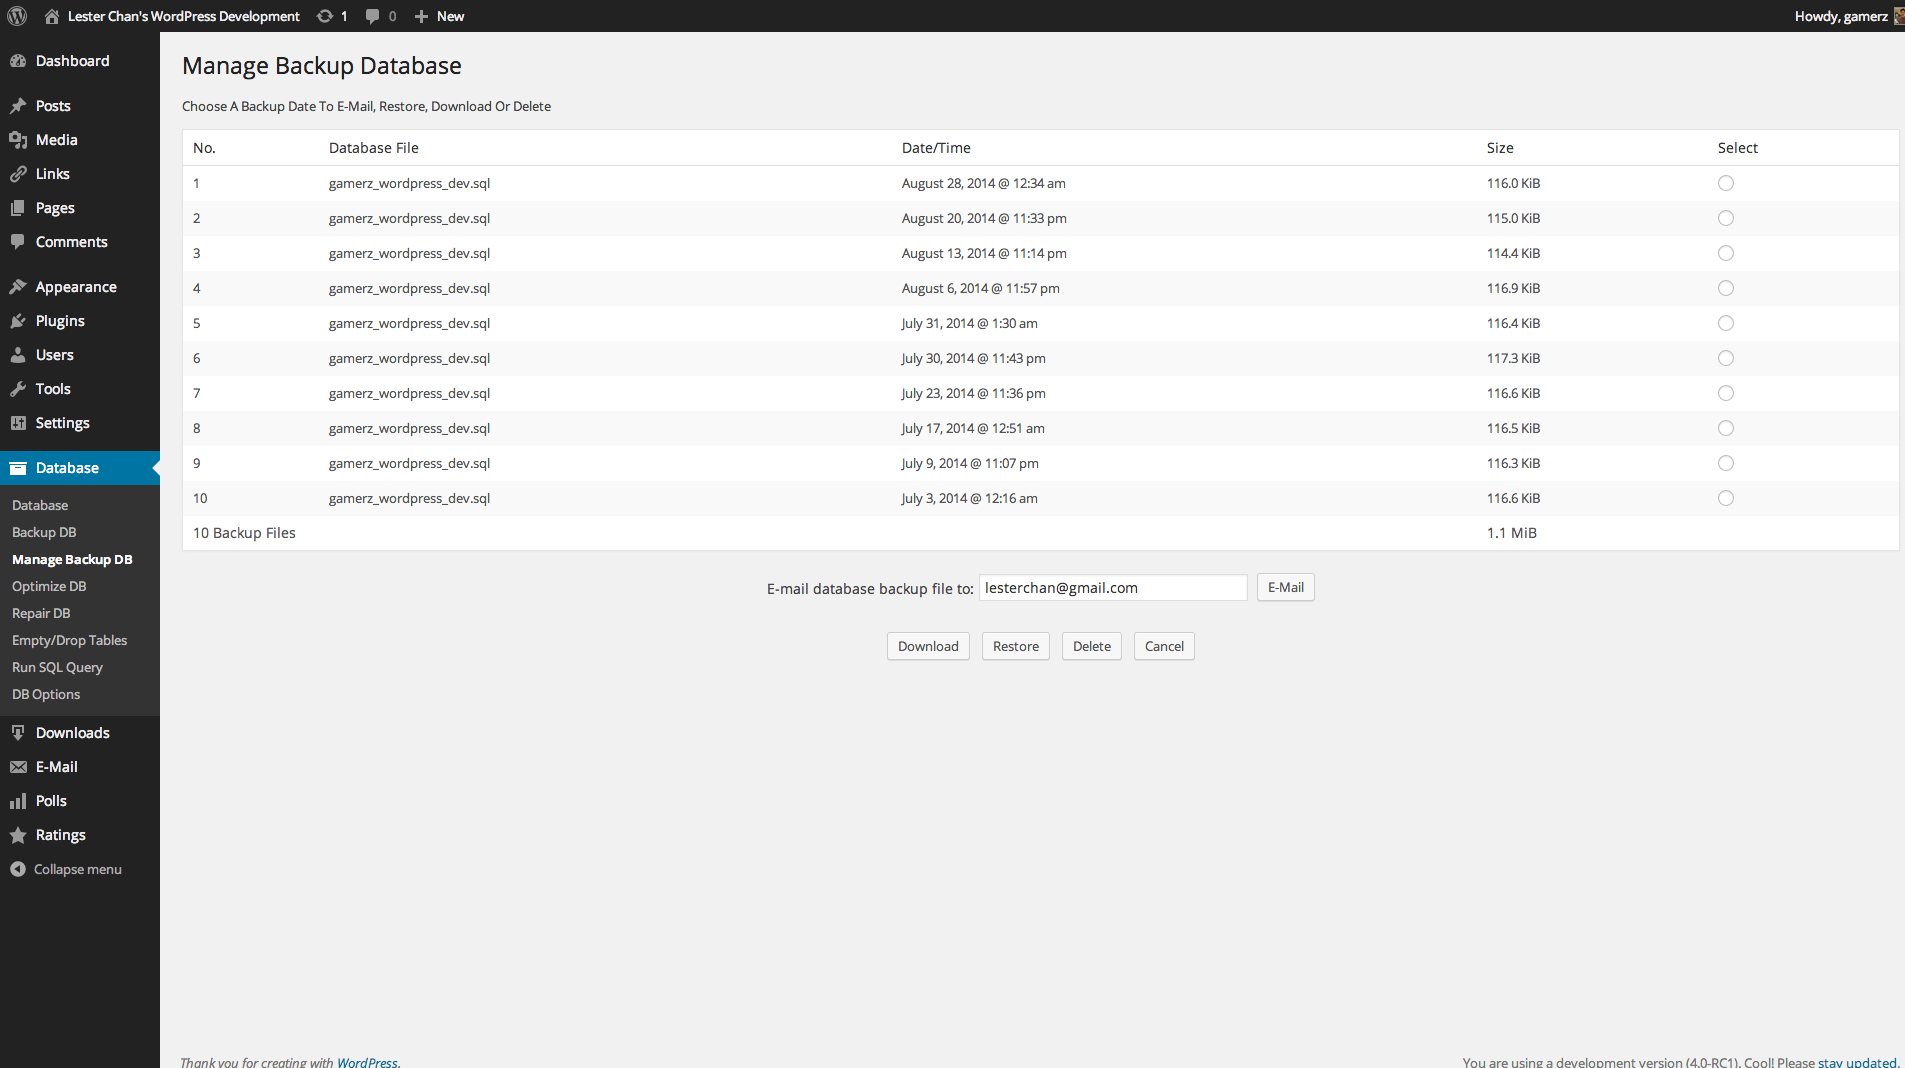 wp-dbmanager screenshot 4